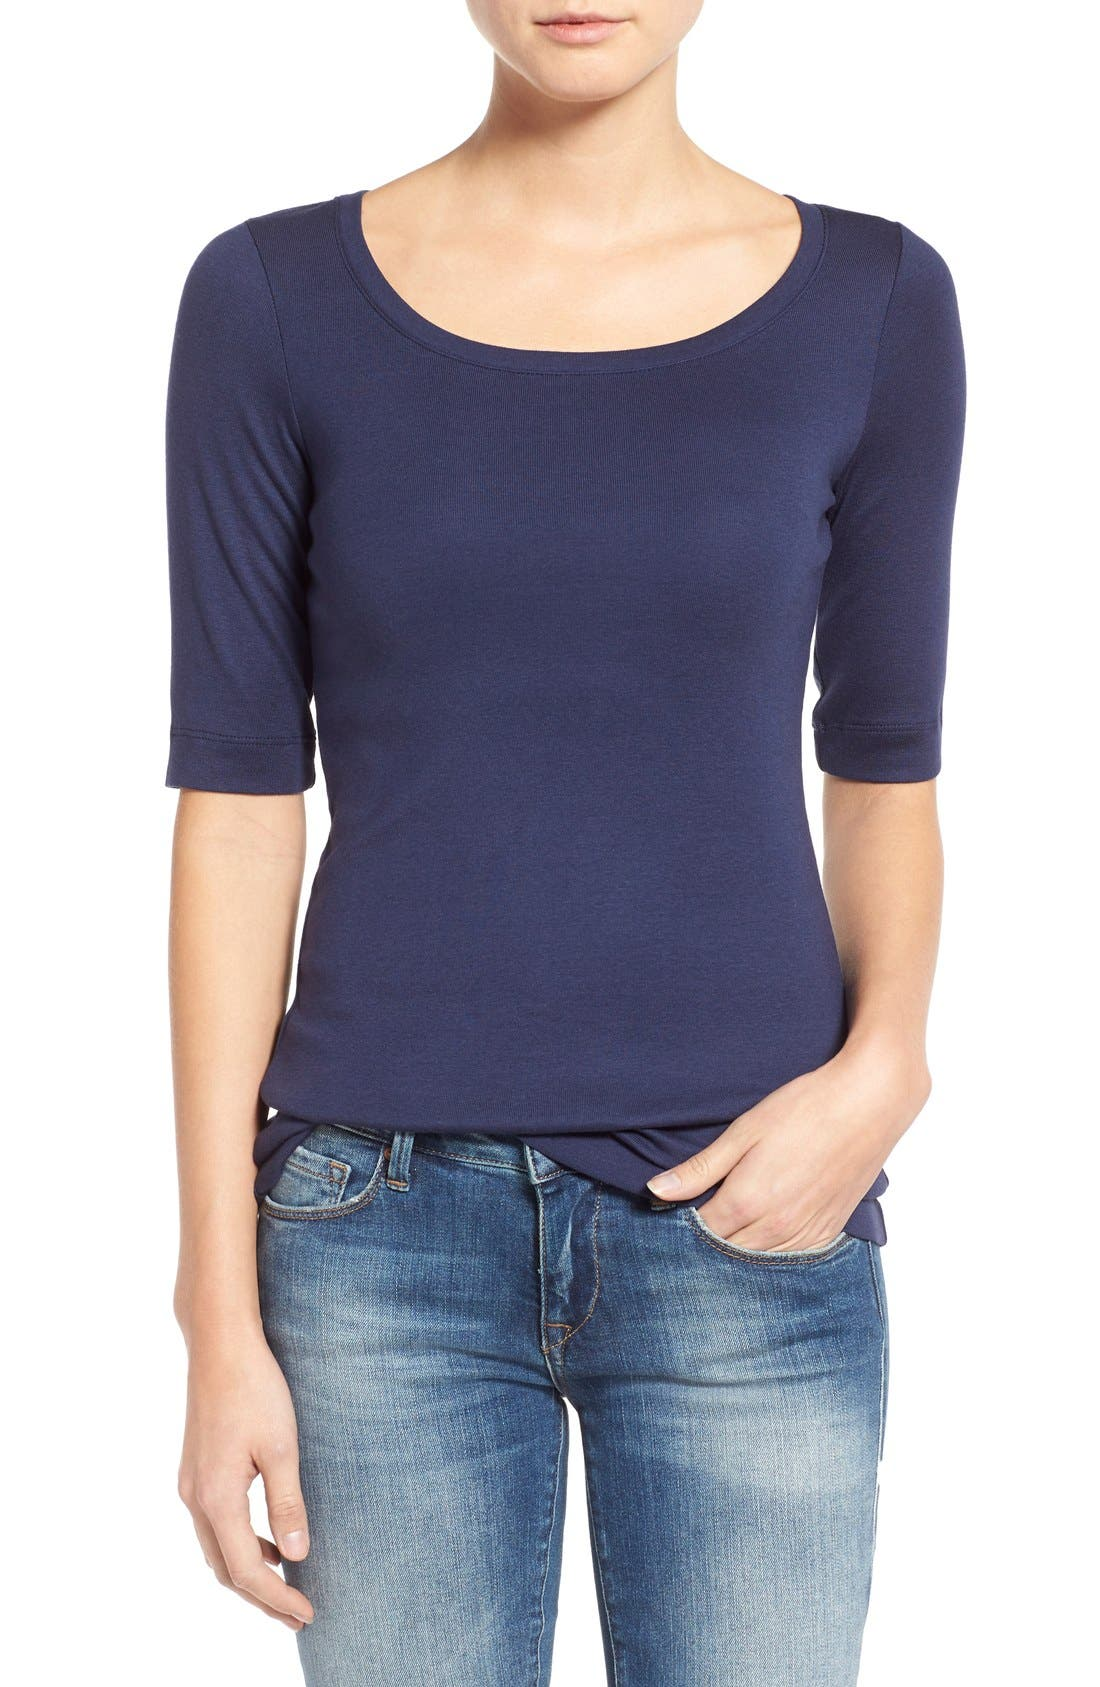 Alternate Image 1 Selected - Caslon® Ballet Neck Cotton & Modal Knit Elbow Sleeve Tee (Regular & Petite)